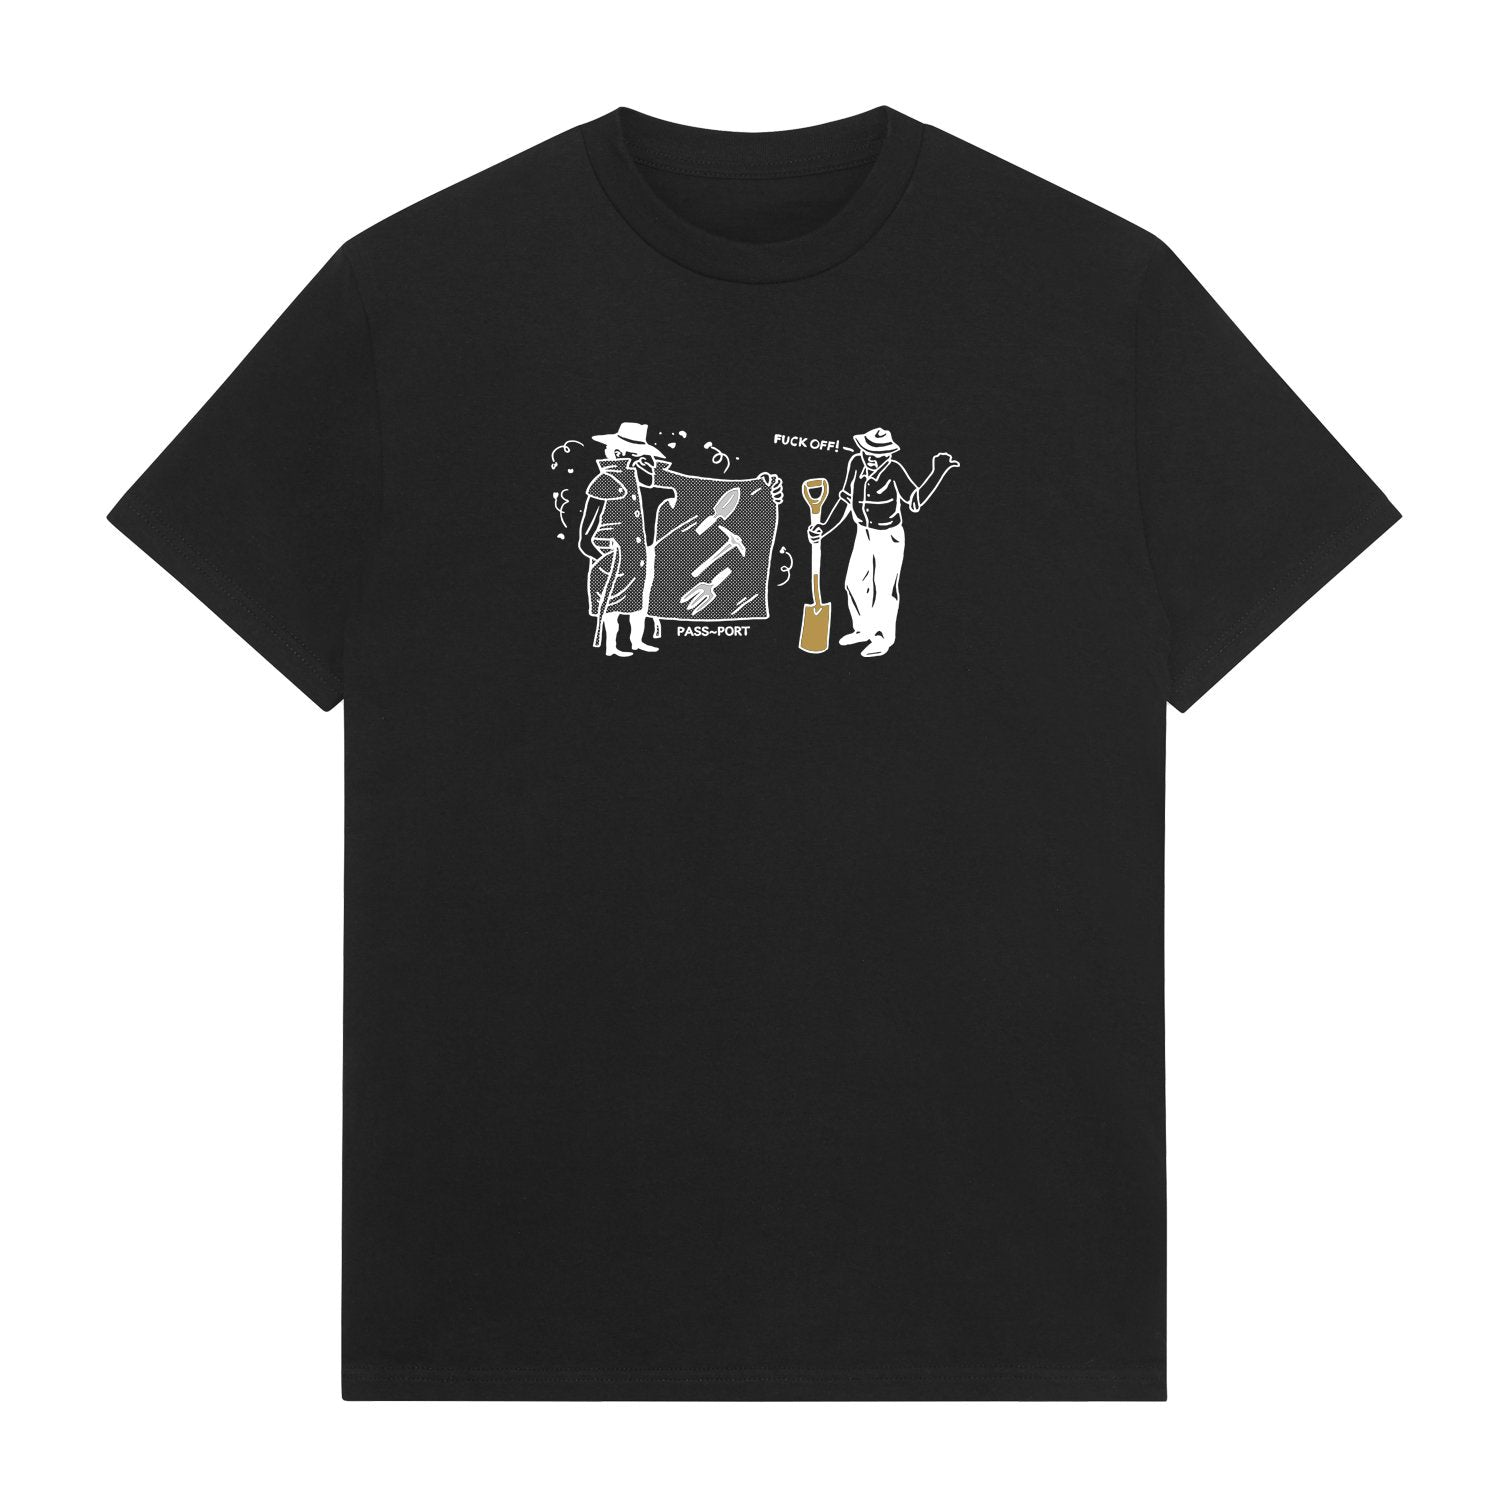 Spades & Shovels Tee, Black